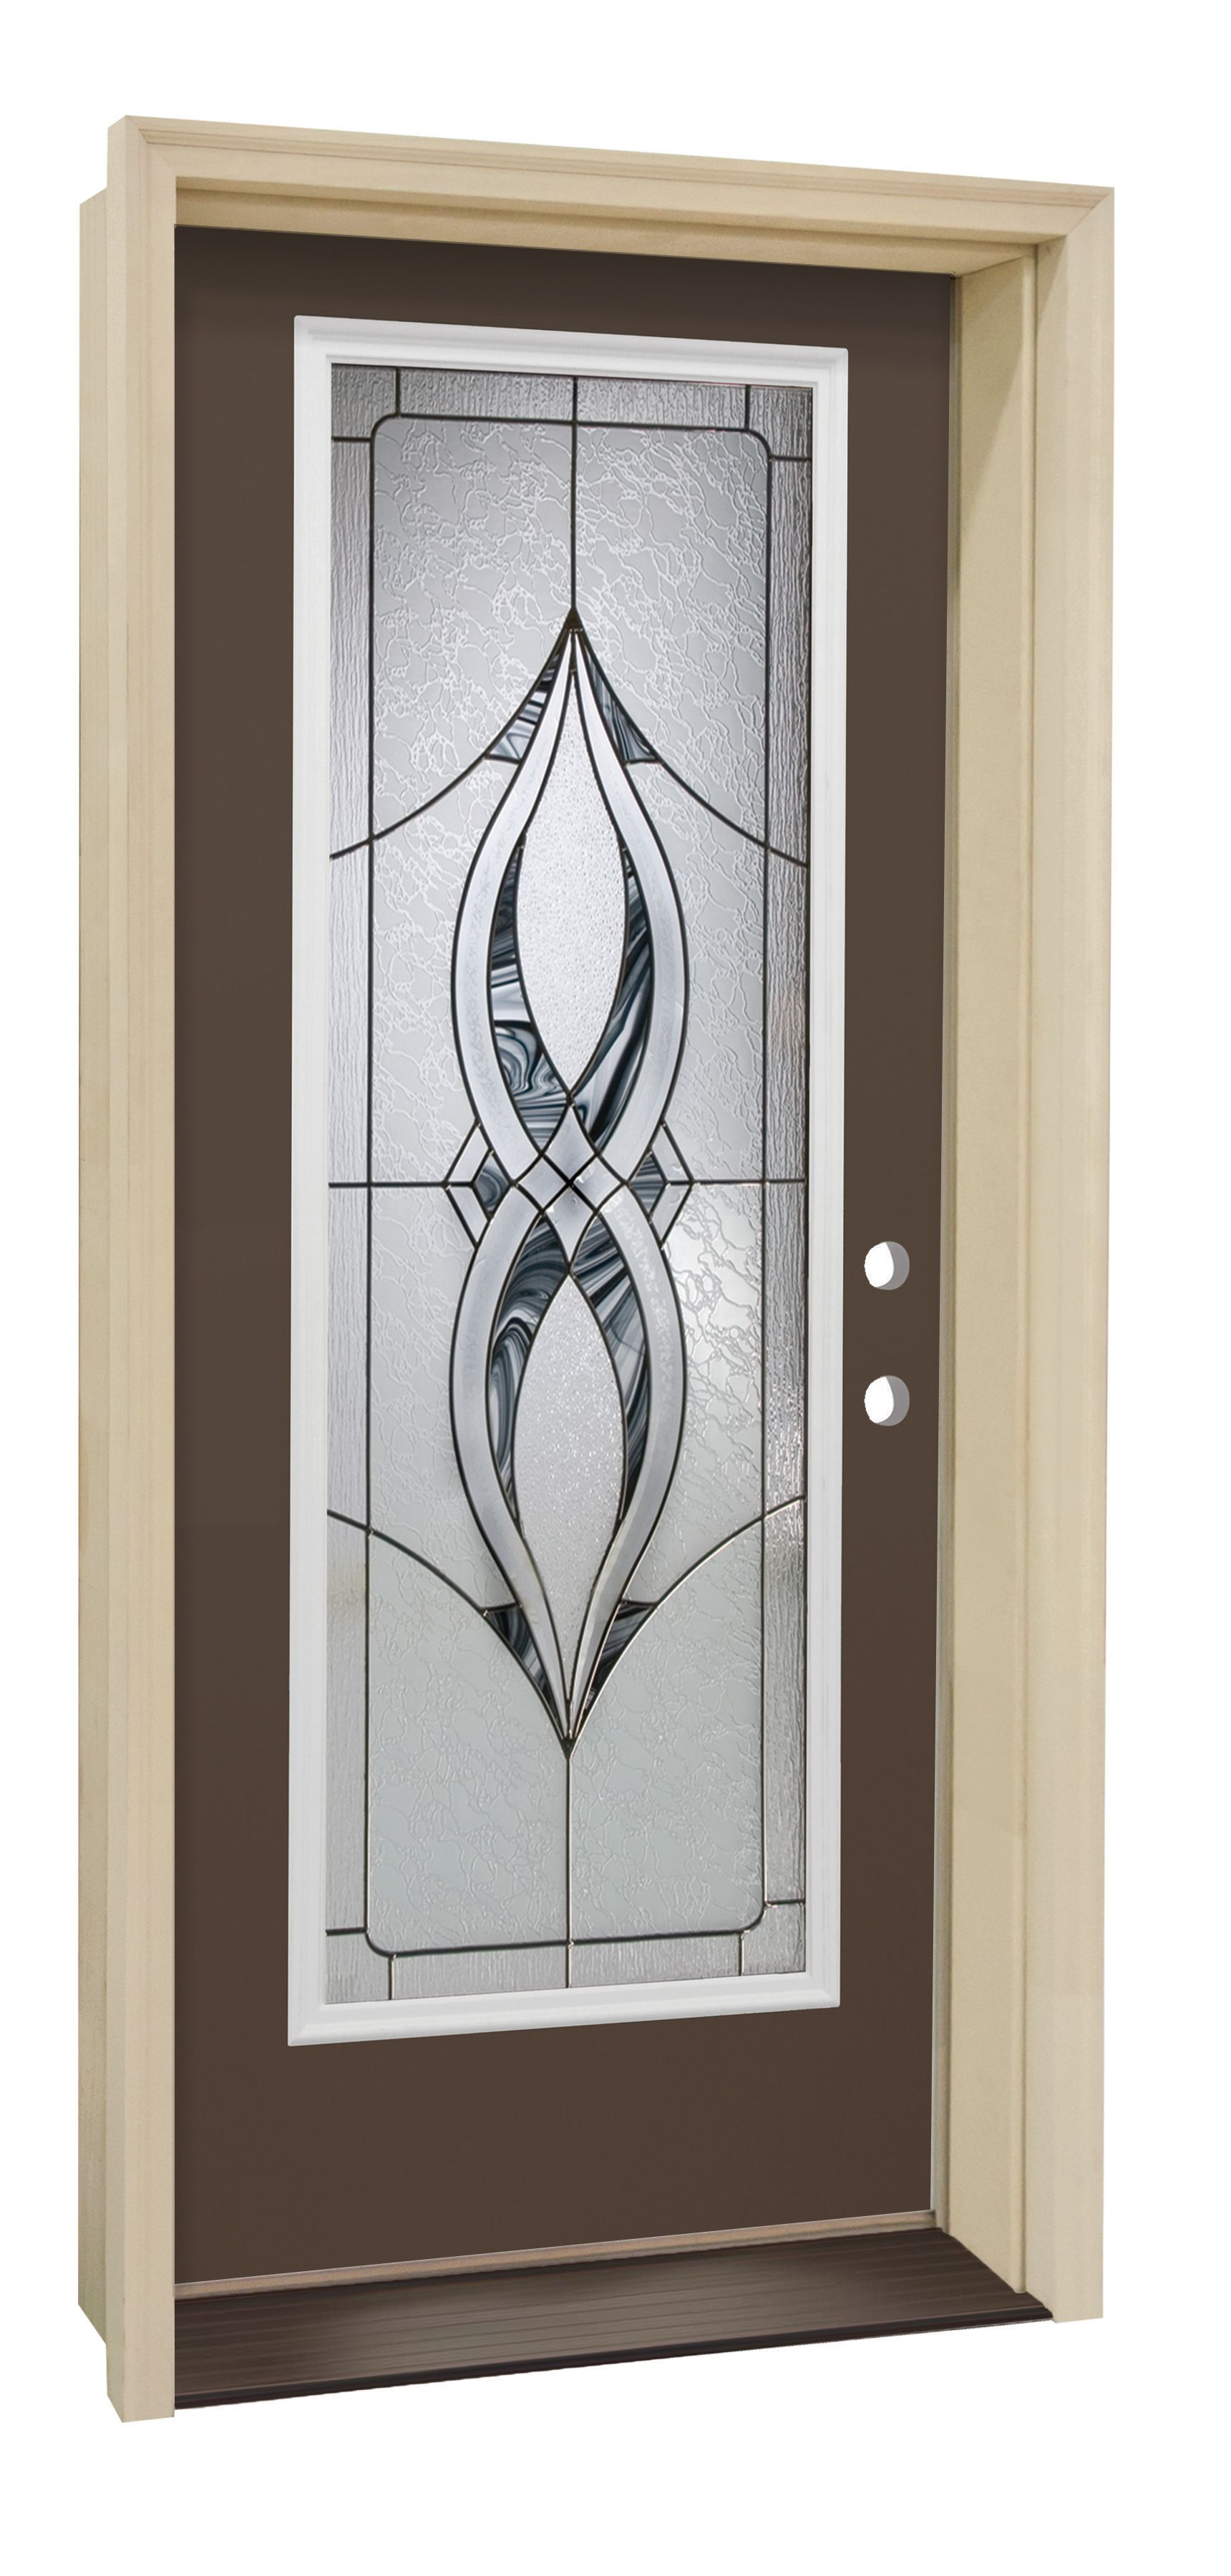 Improve your entryway with the fabulous Kenton Steel Door! This stunning Burnished Slate door makes a statement with its sweeping glass pattern and strong bronze accents.